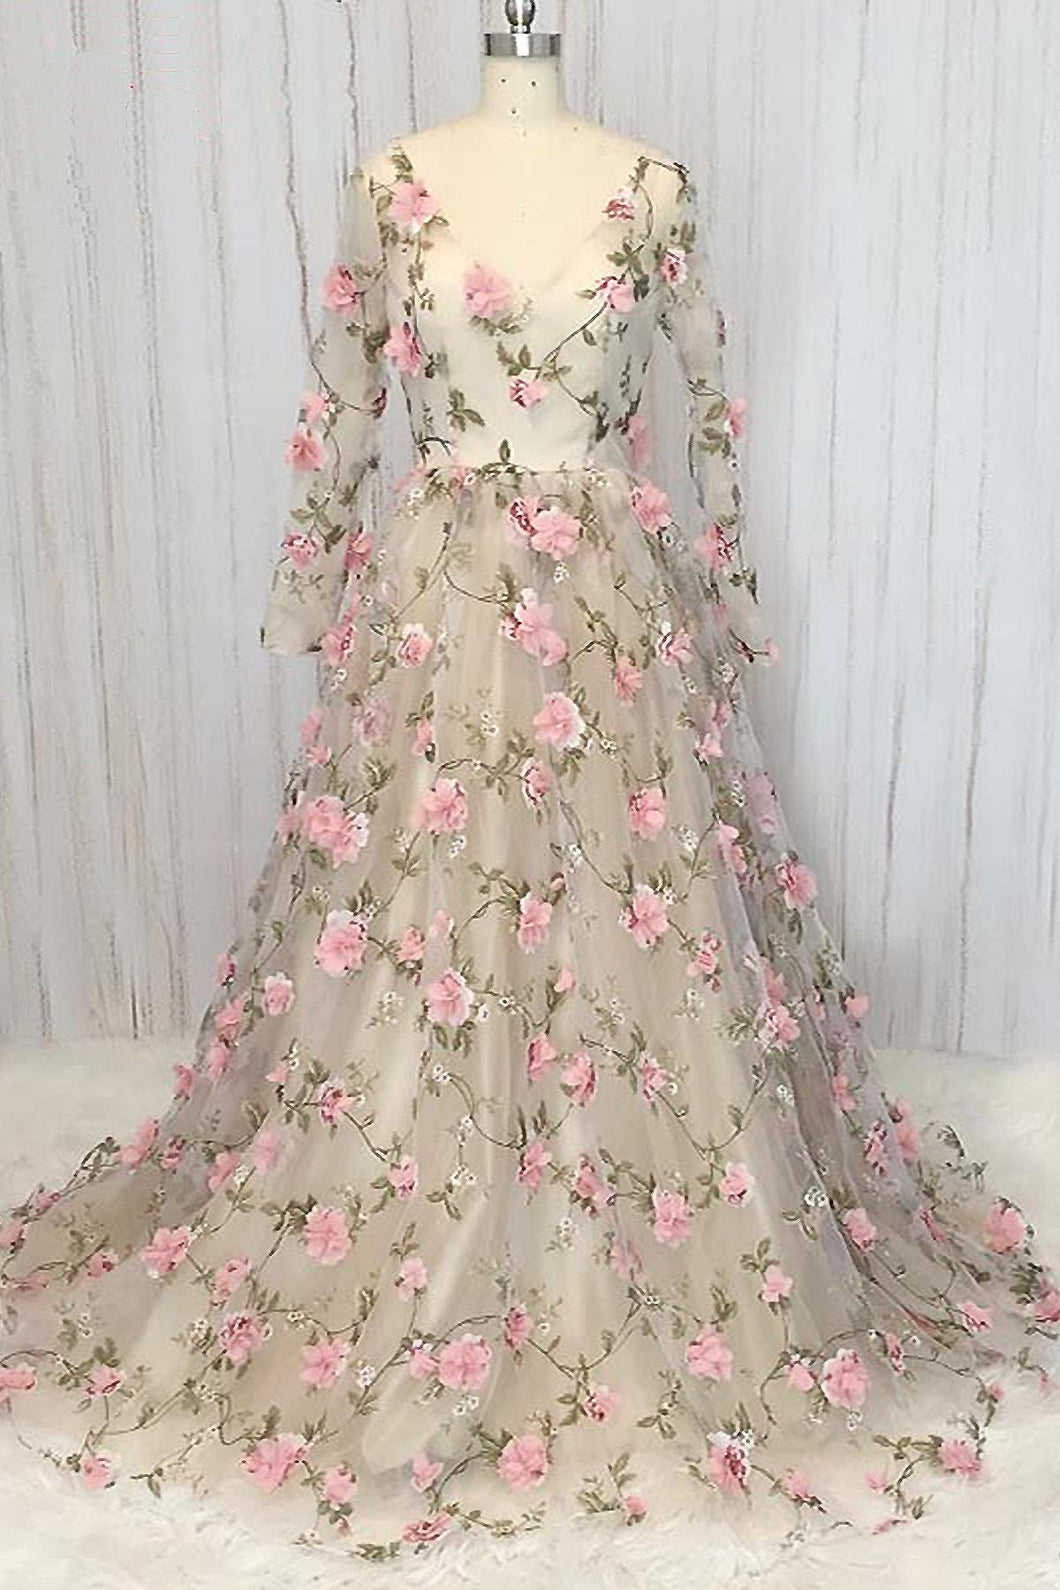 2019 Prom Dresses | Cute creamy tulle V neck 3D flower appliqué long senior prom dress, party dress with long sleeves